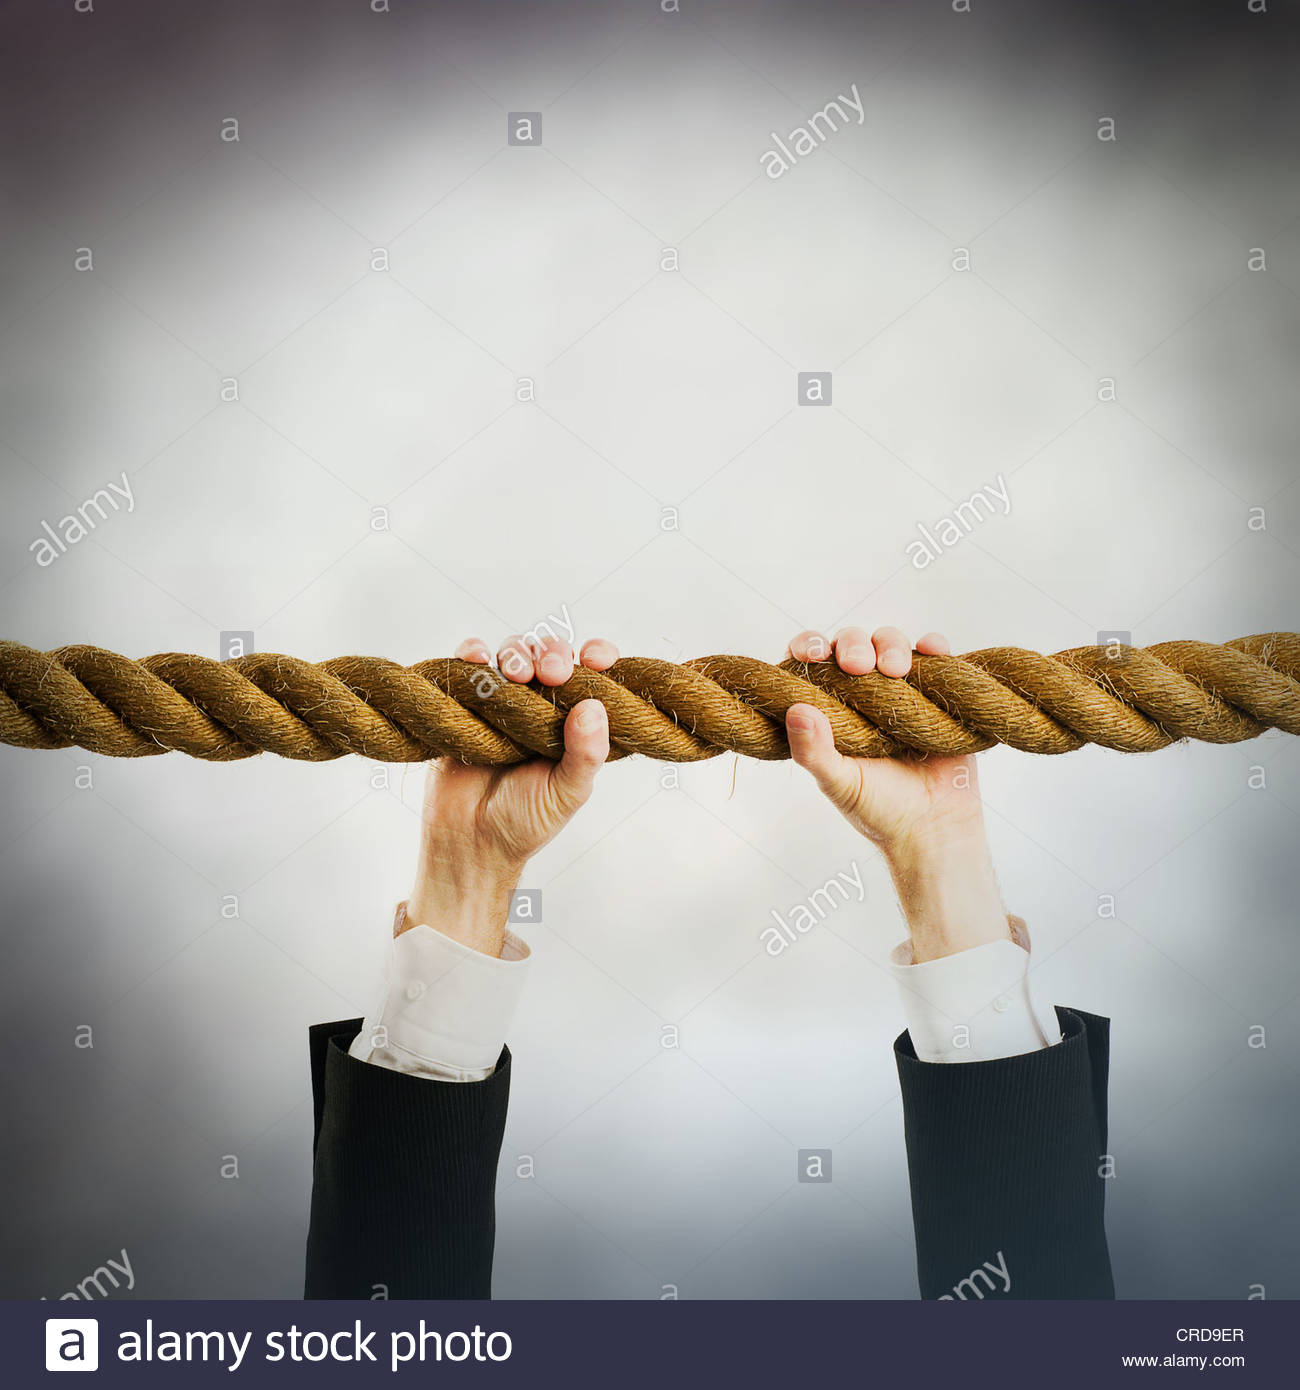 safety rope - Stock Image